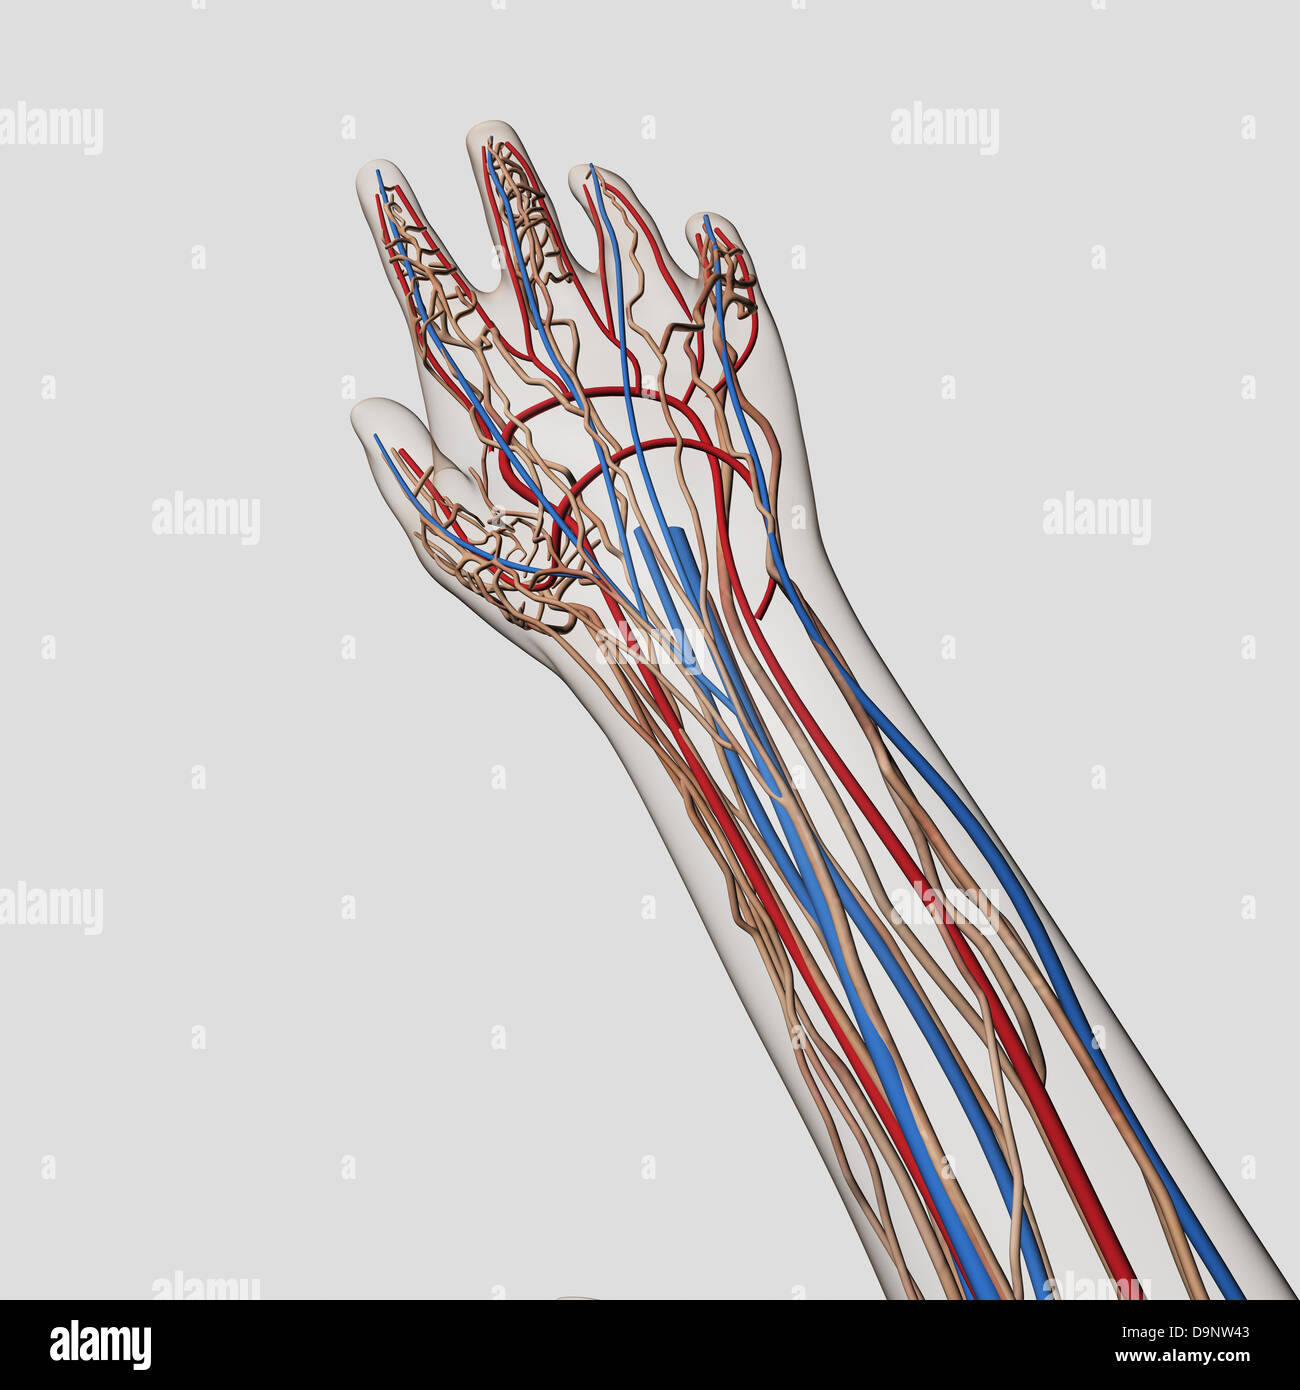 Arteries Veins Stockfotos & Arteries Veins Bilder - Alamy